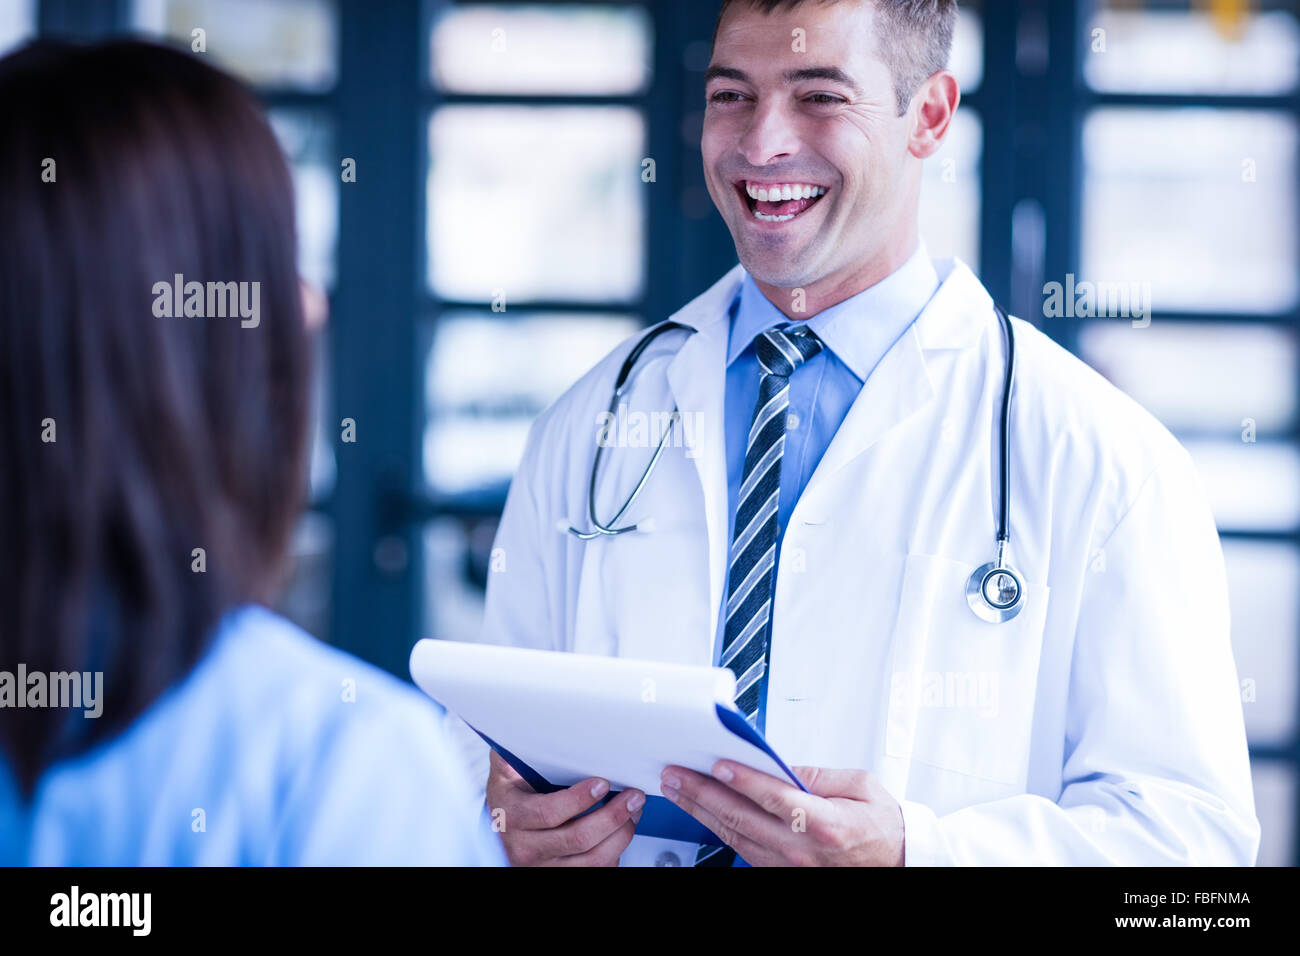 Nurse and doctor smiling - Stock Image